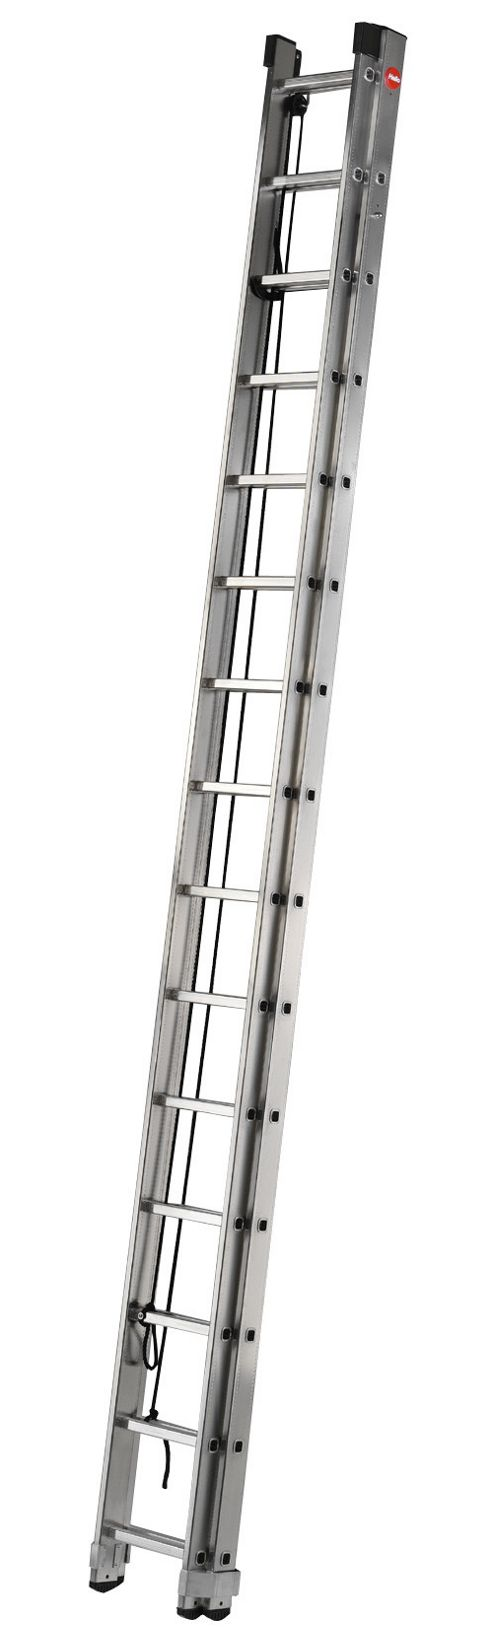 Hailo 843cm ProfiStep Duo 2-Section Aluminium Rope-Operated Ladder